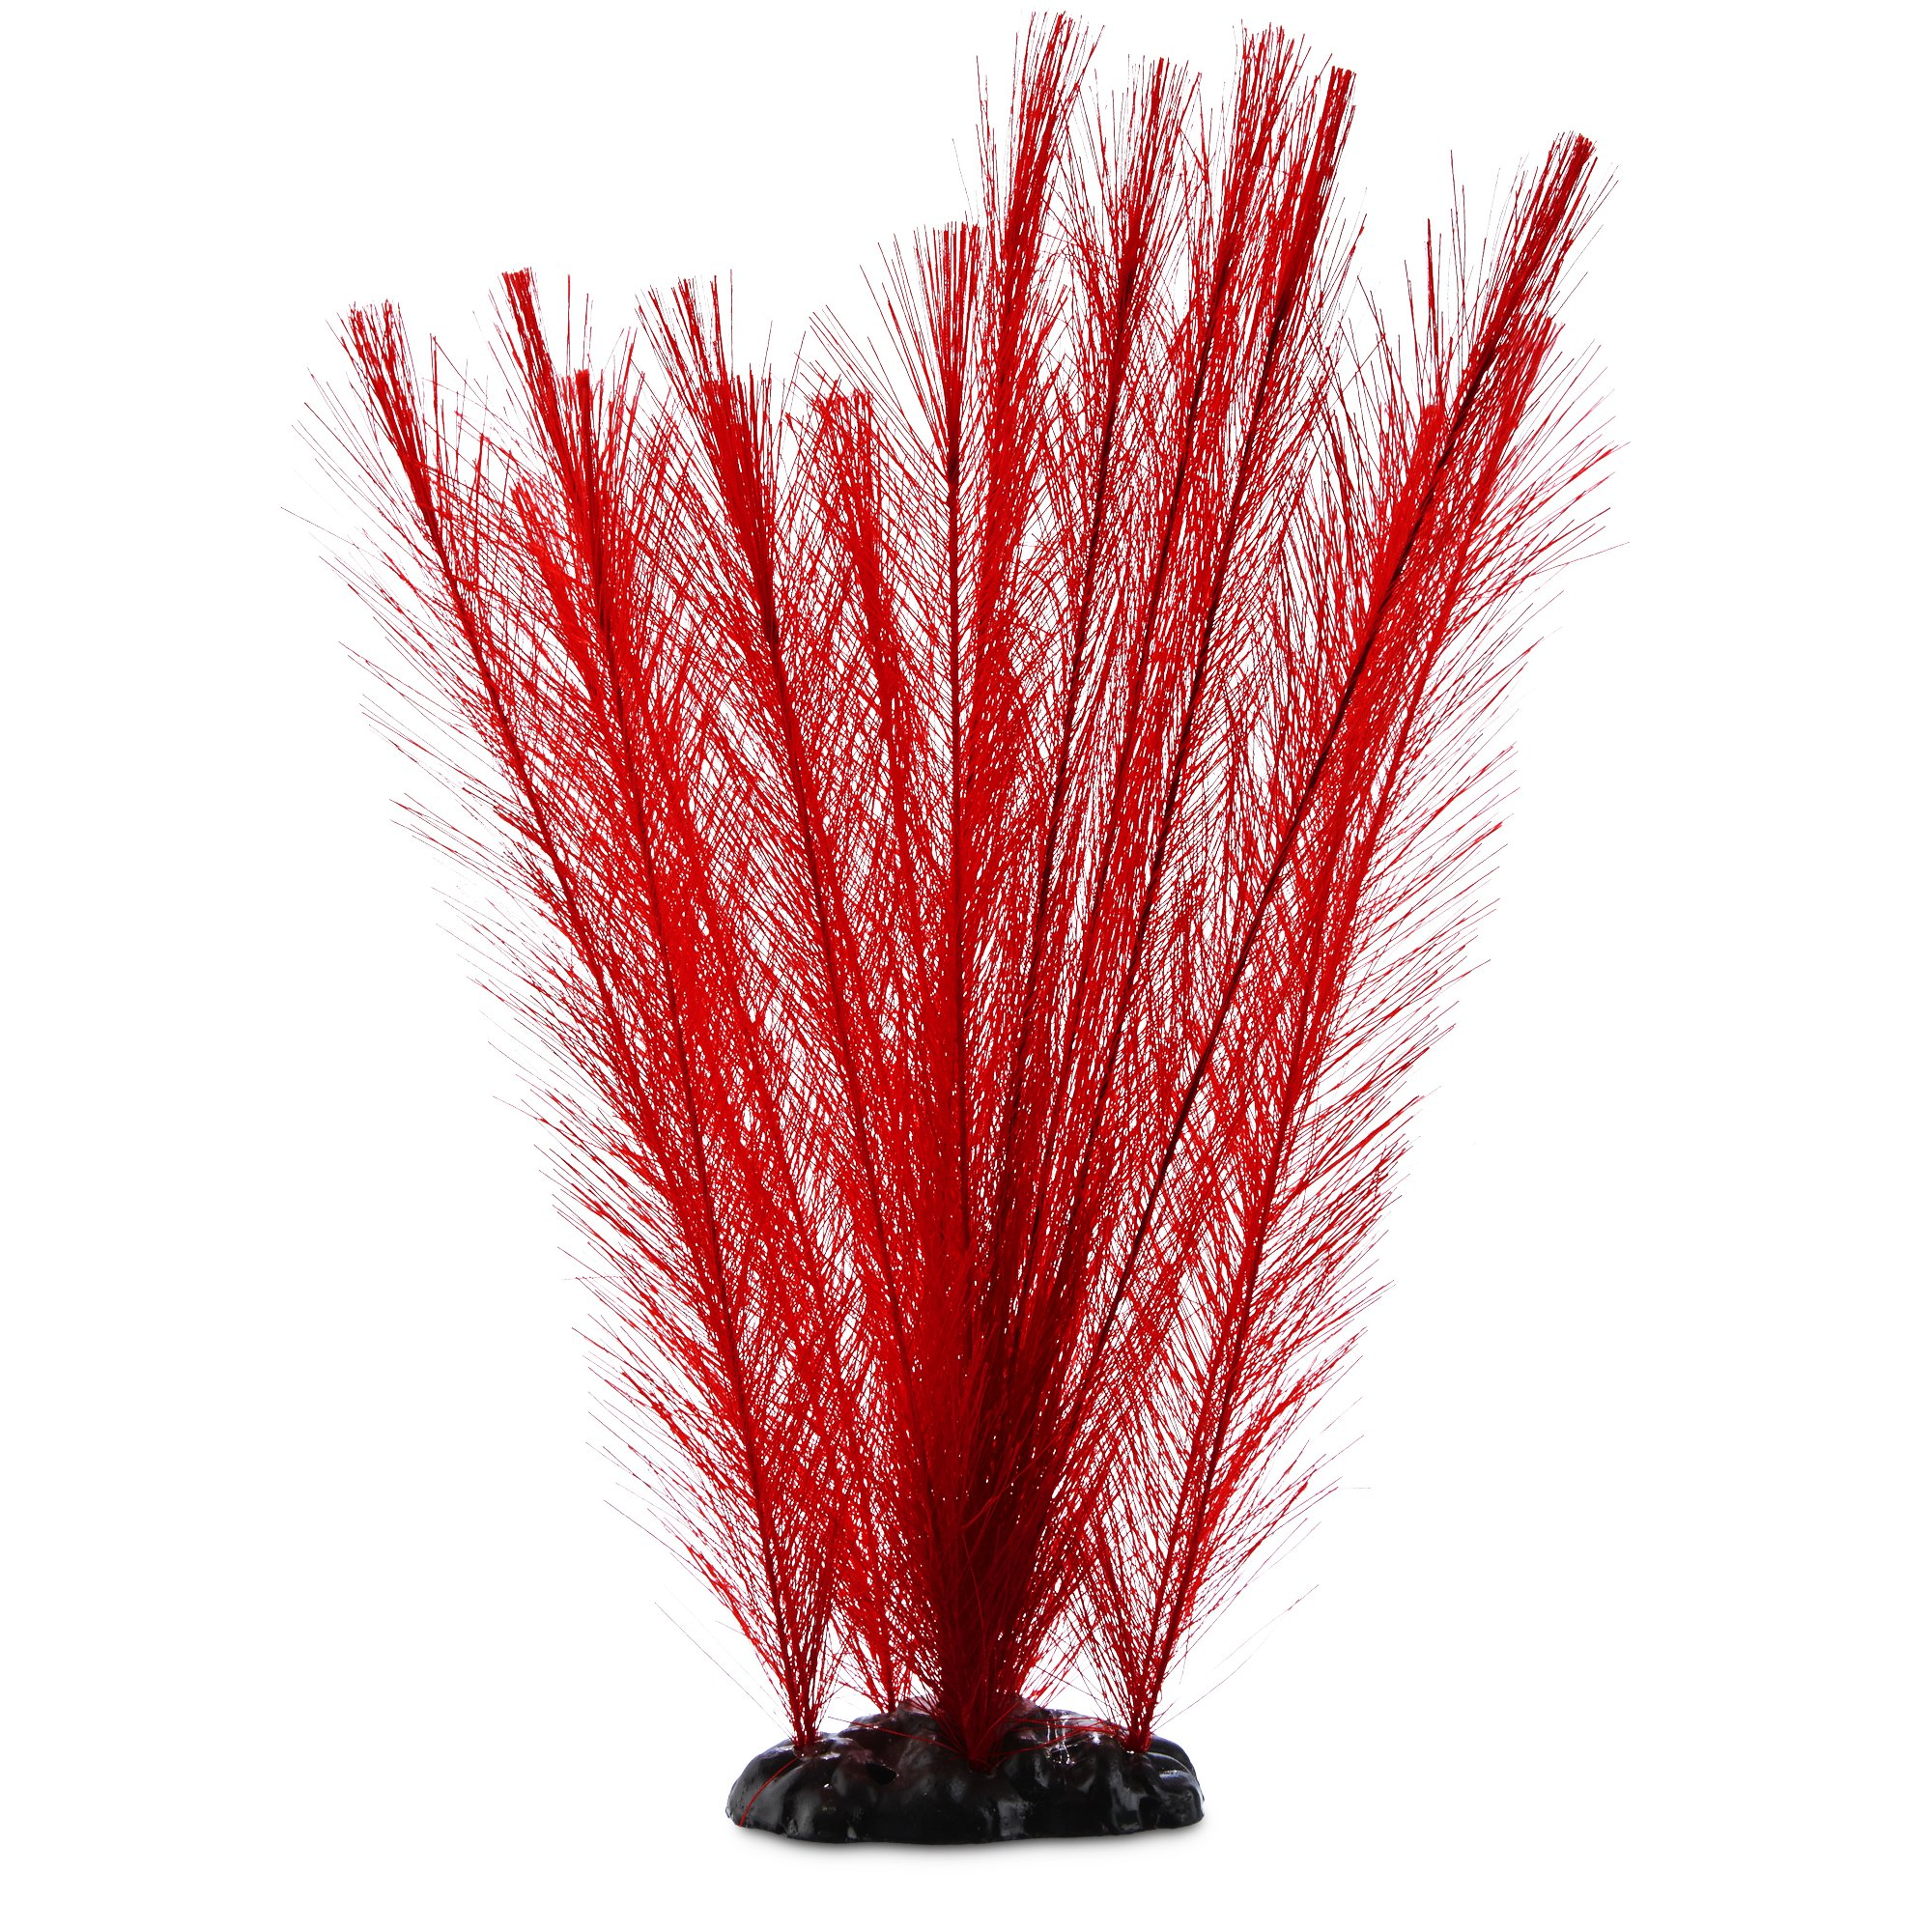 Imagitarium potted feather plant aquatic decor petco for Aquatic decoration